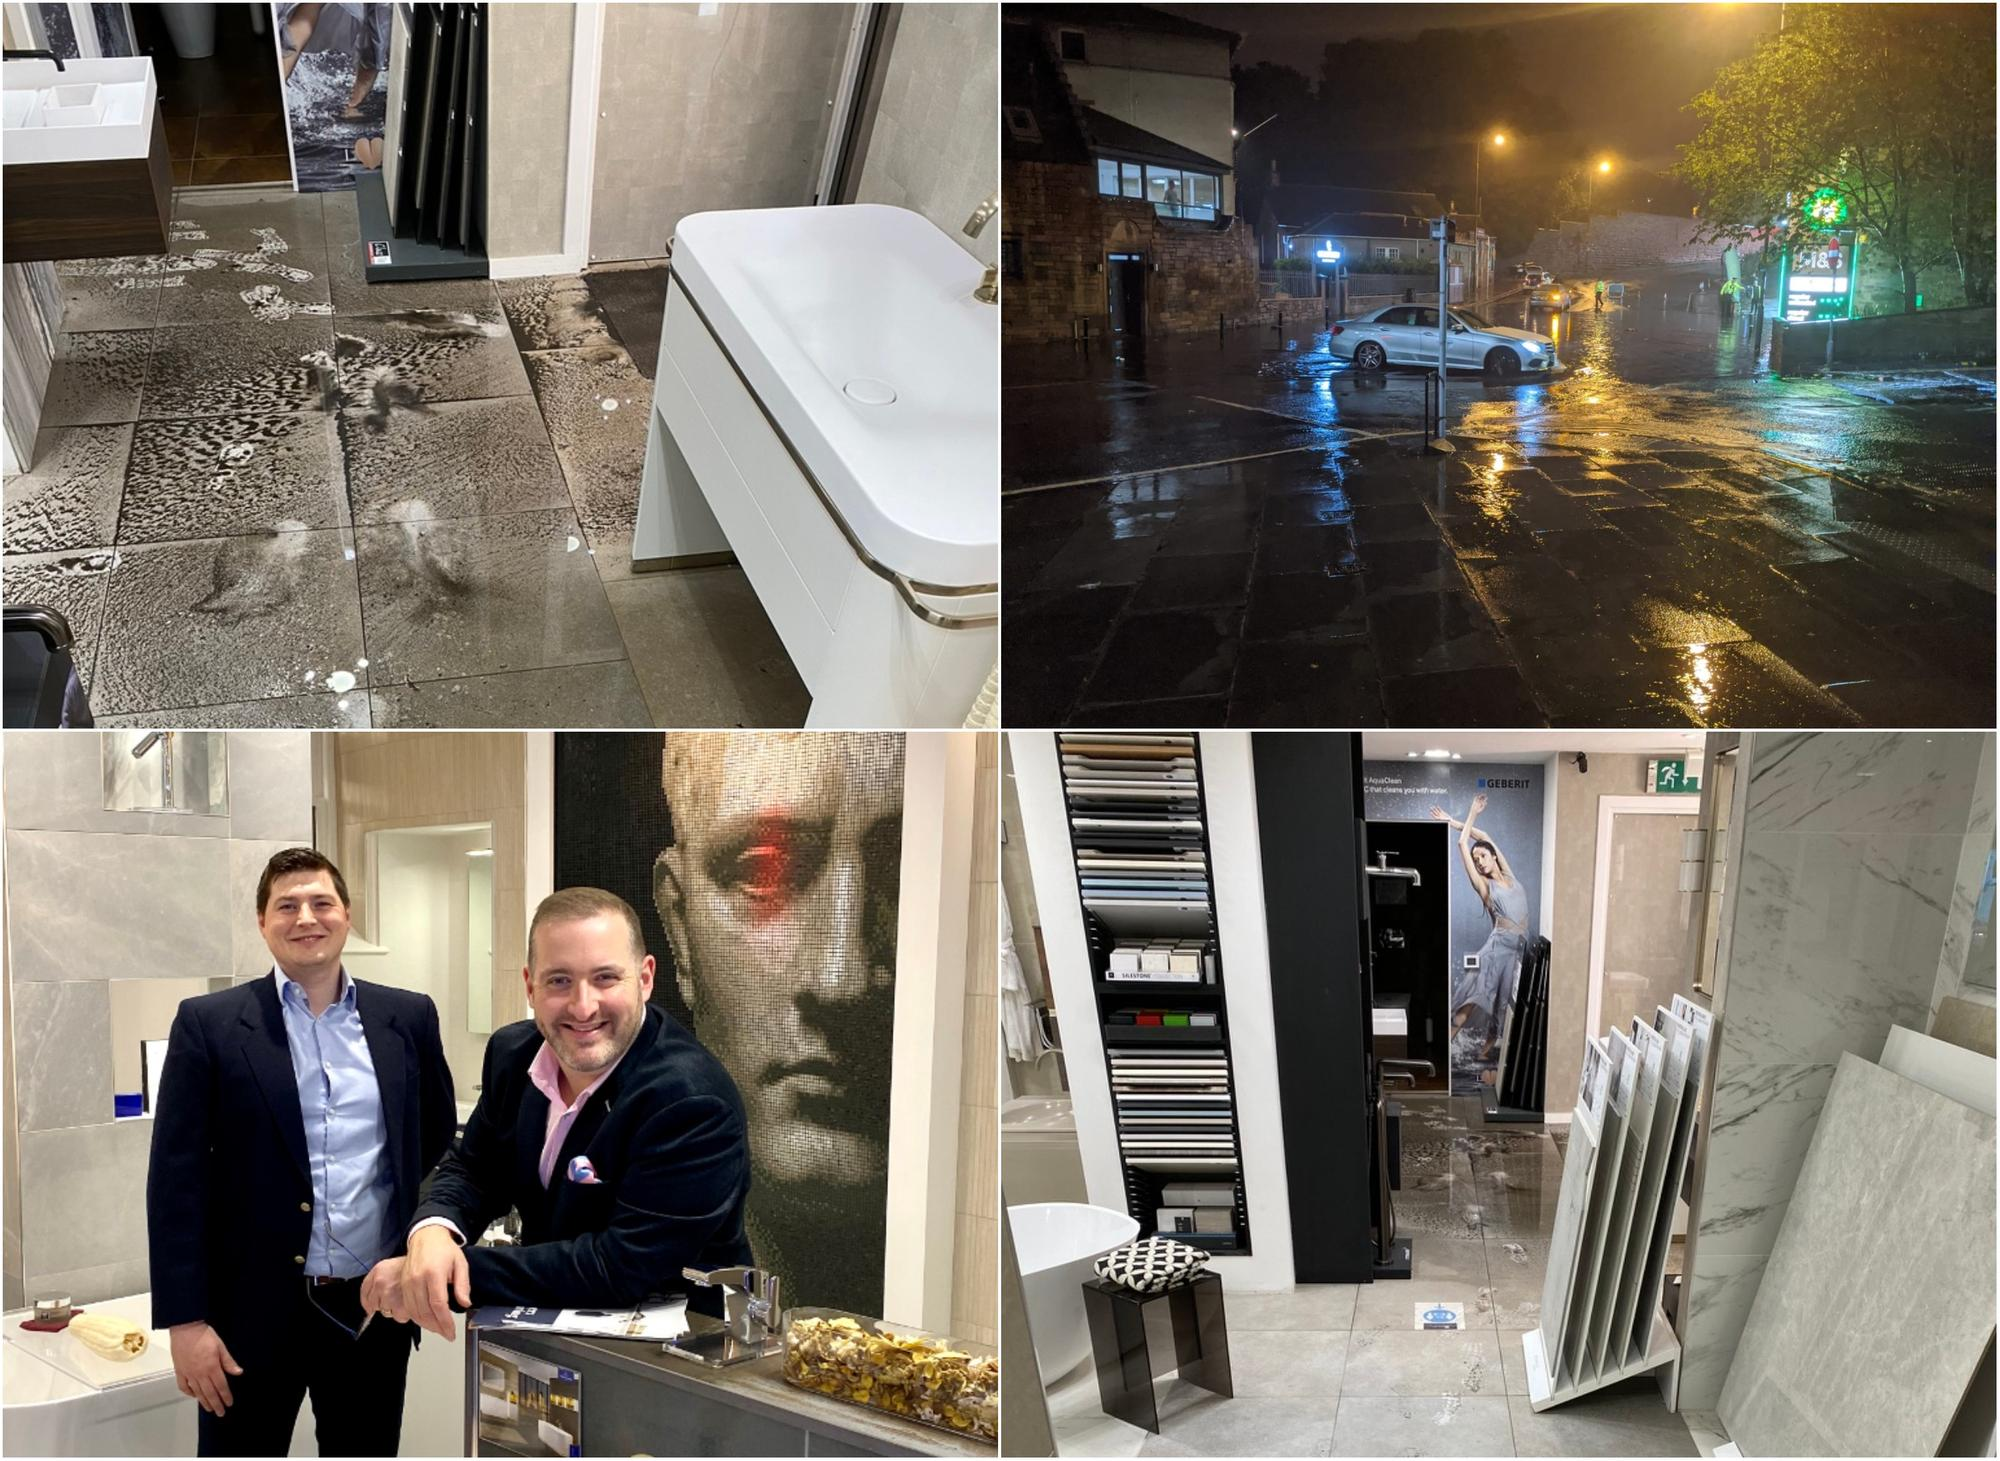 'Absolute despair' - Edinburgh luxury bathroom store owner left with 'tens of thousands of pounds' worth of flood damage